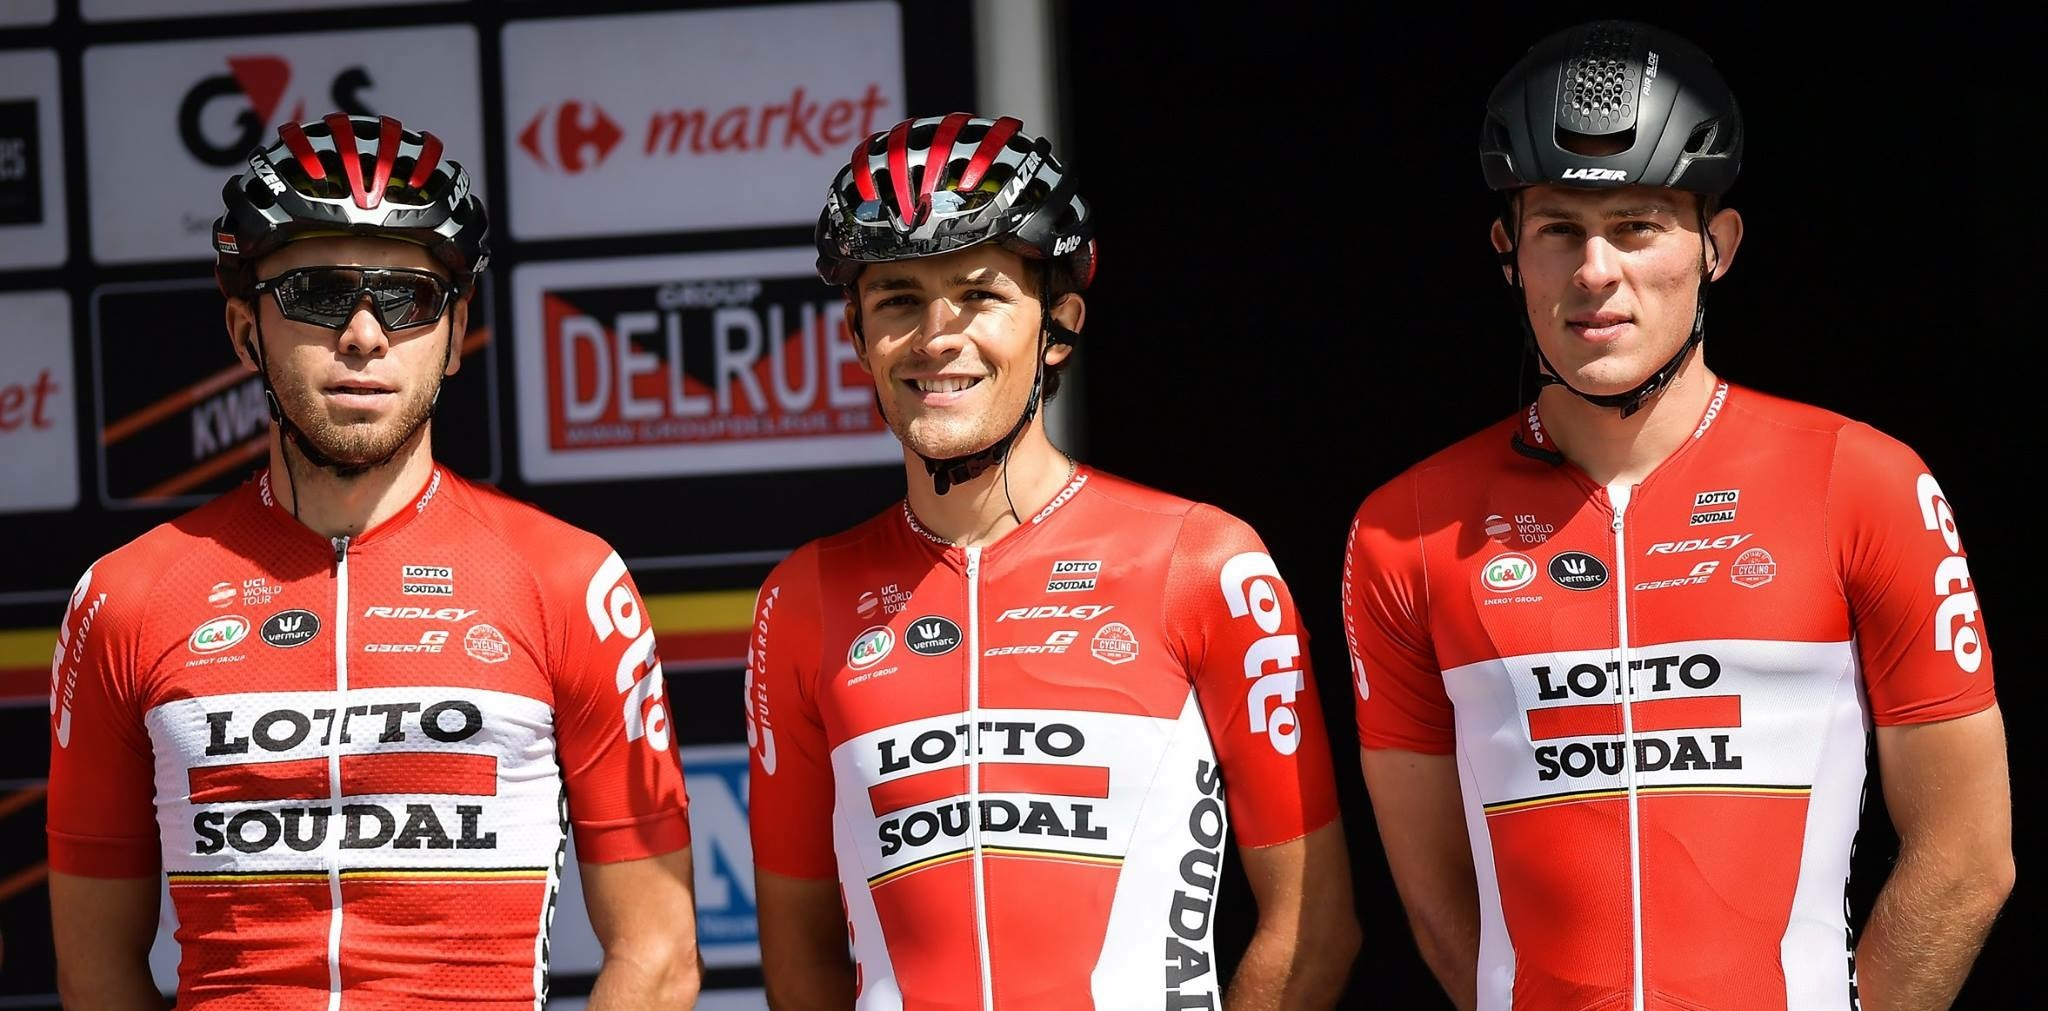 James shaw on the podium with his Lotto-Soudal teammates